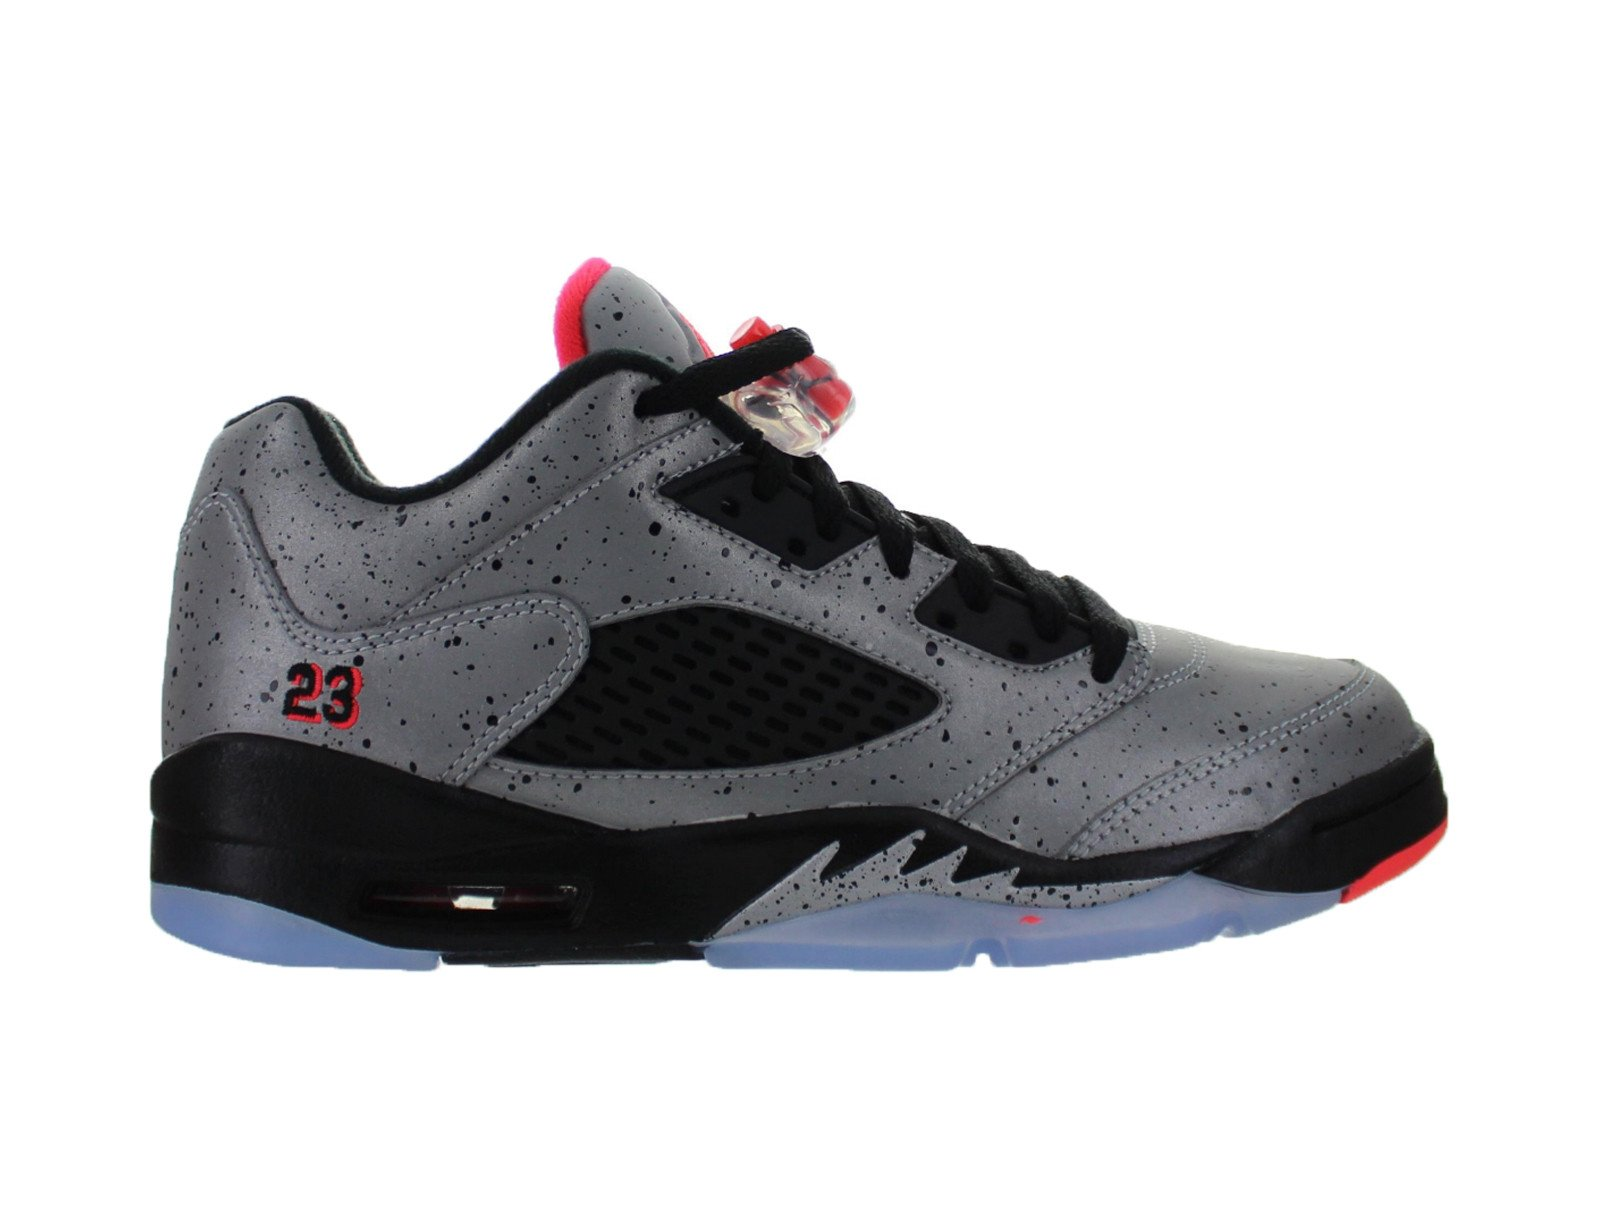 new style a4136 e6442 AIR JORDAN - Kids Air Jordan 5 V Retro Low